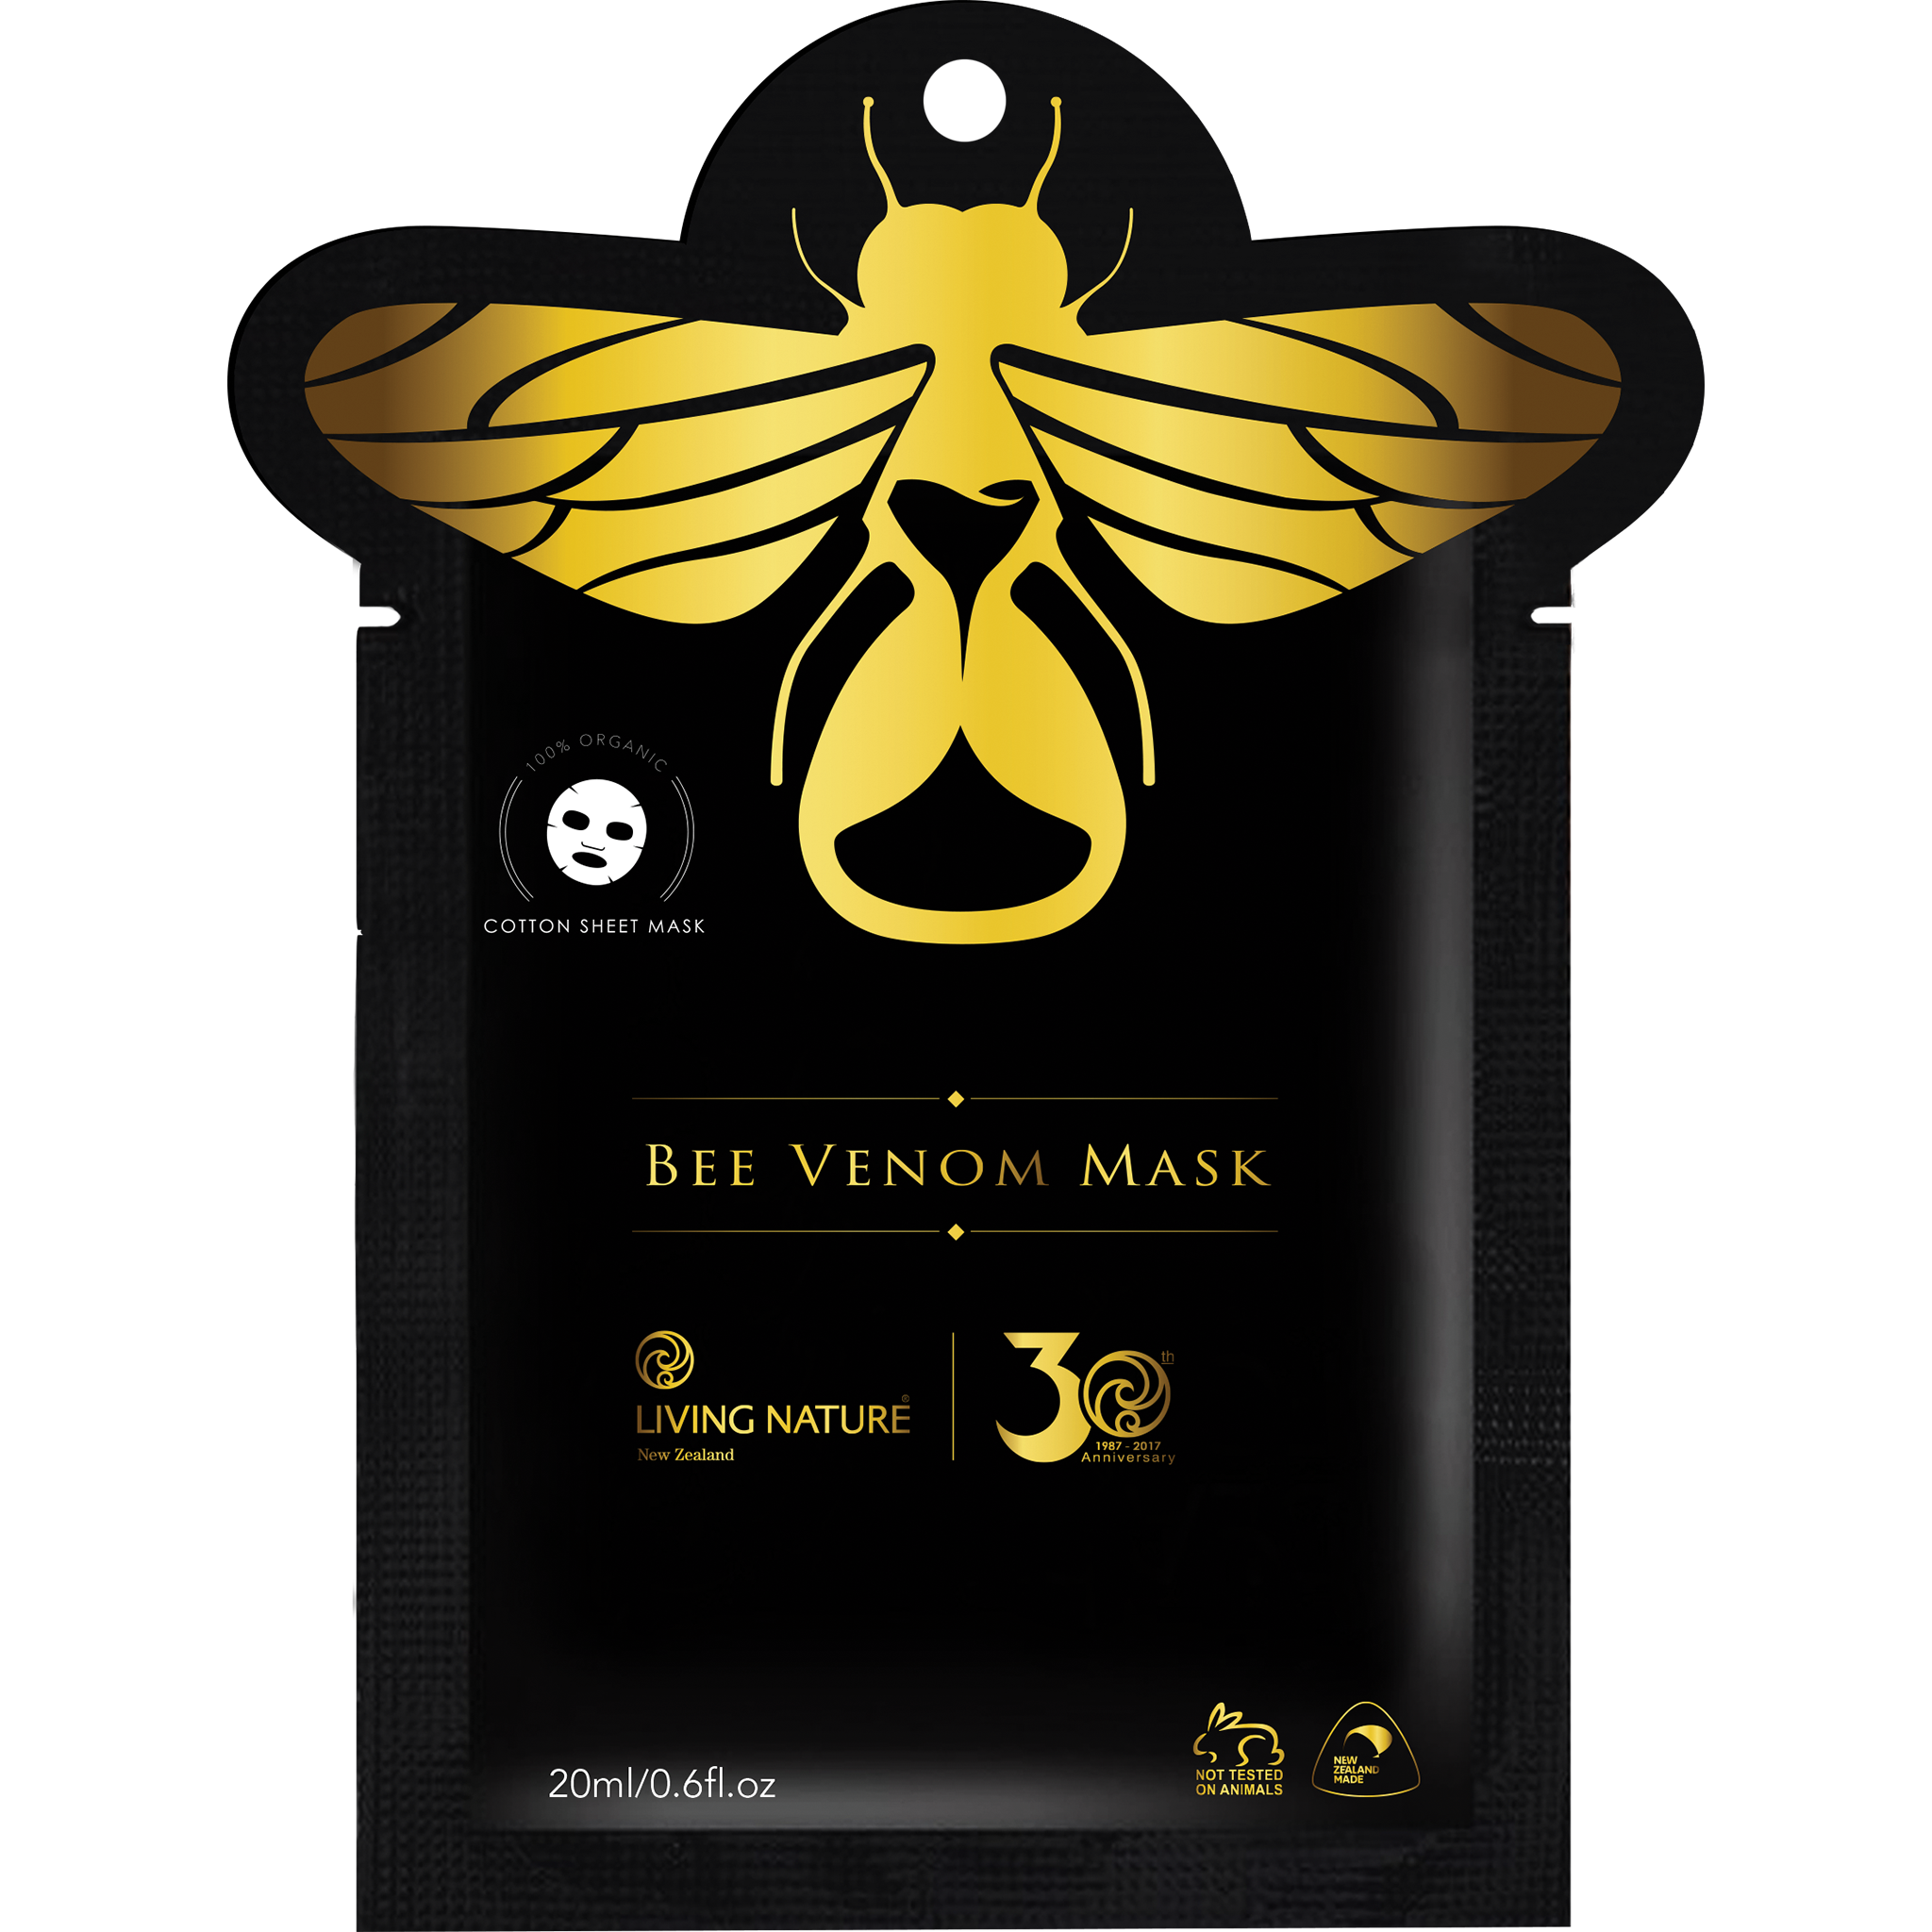 Bee Venom Mask